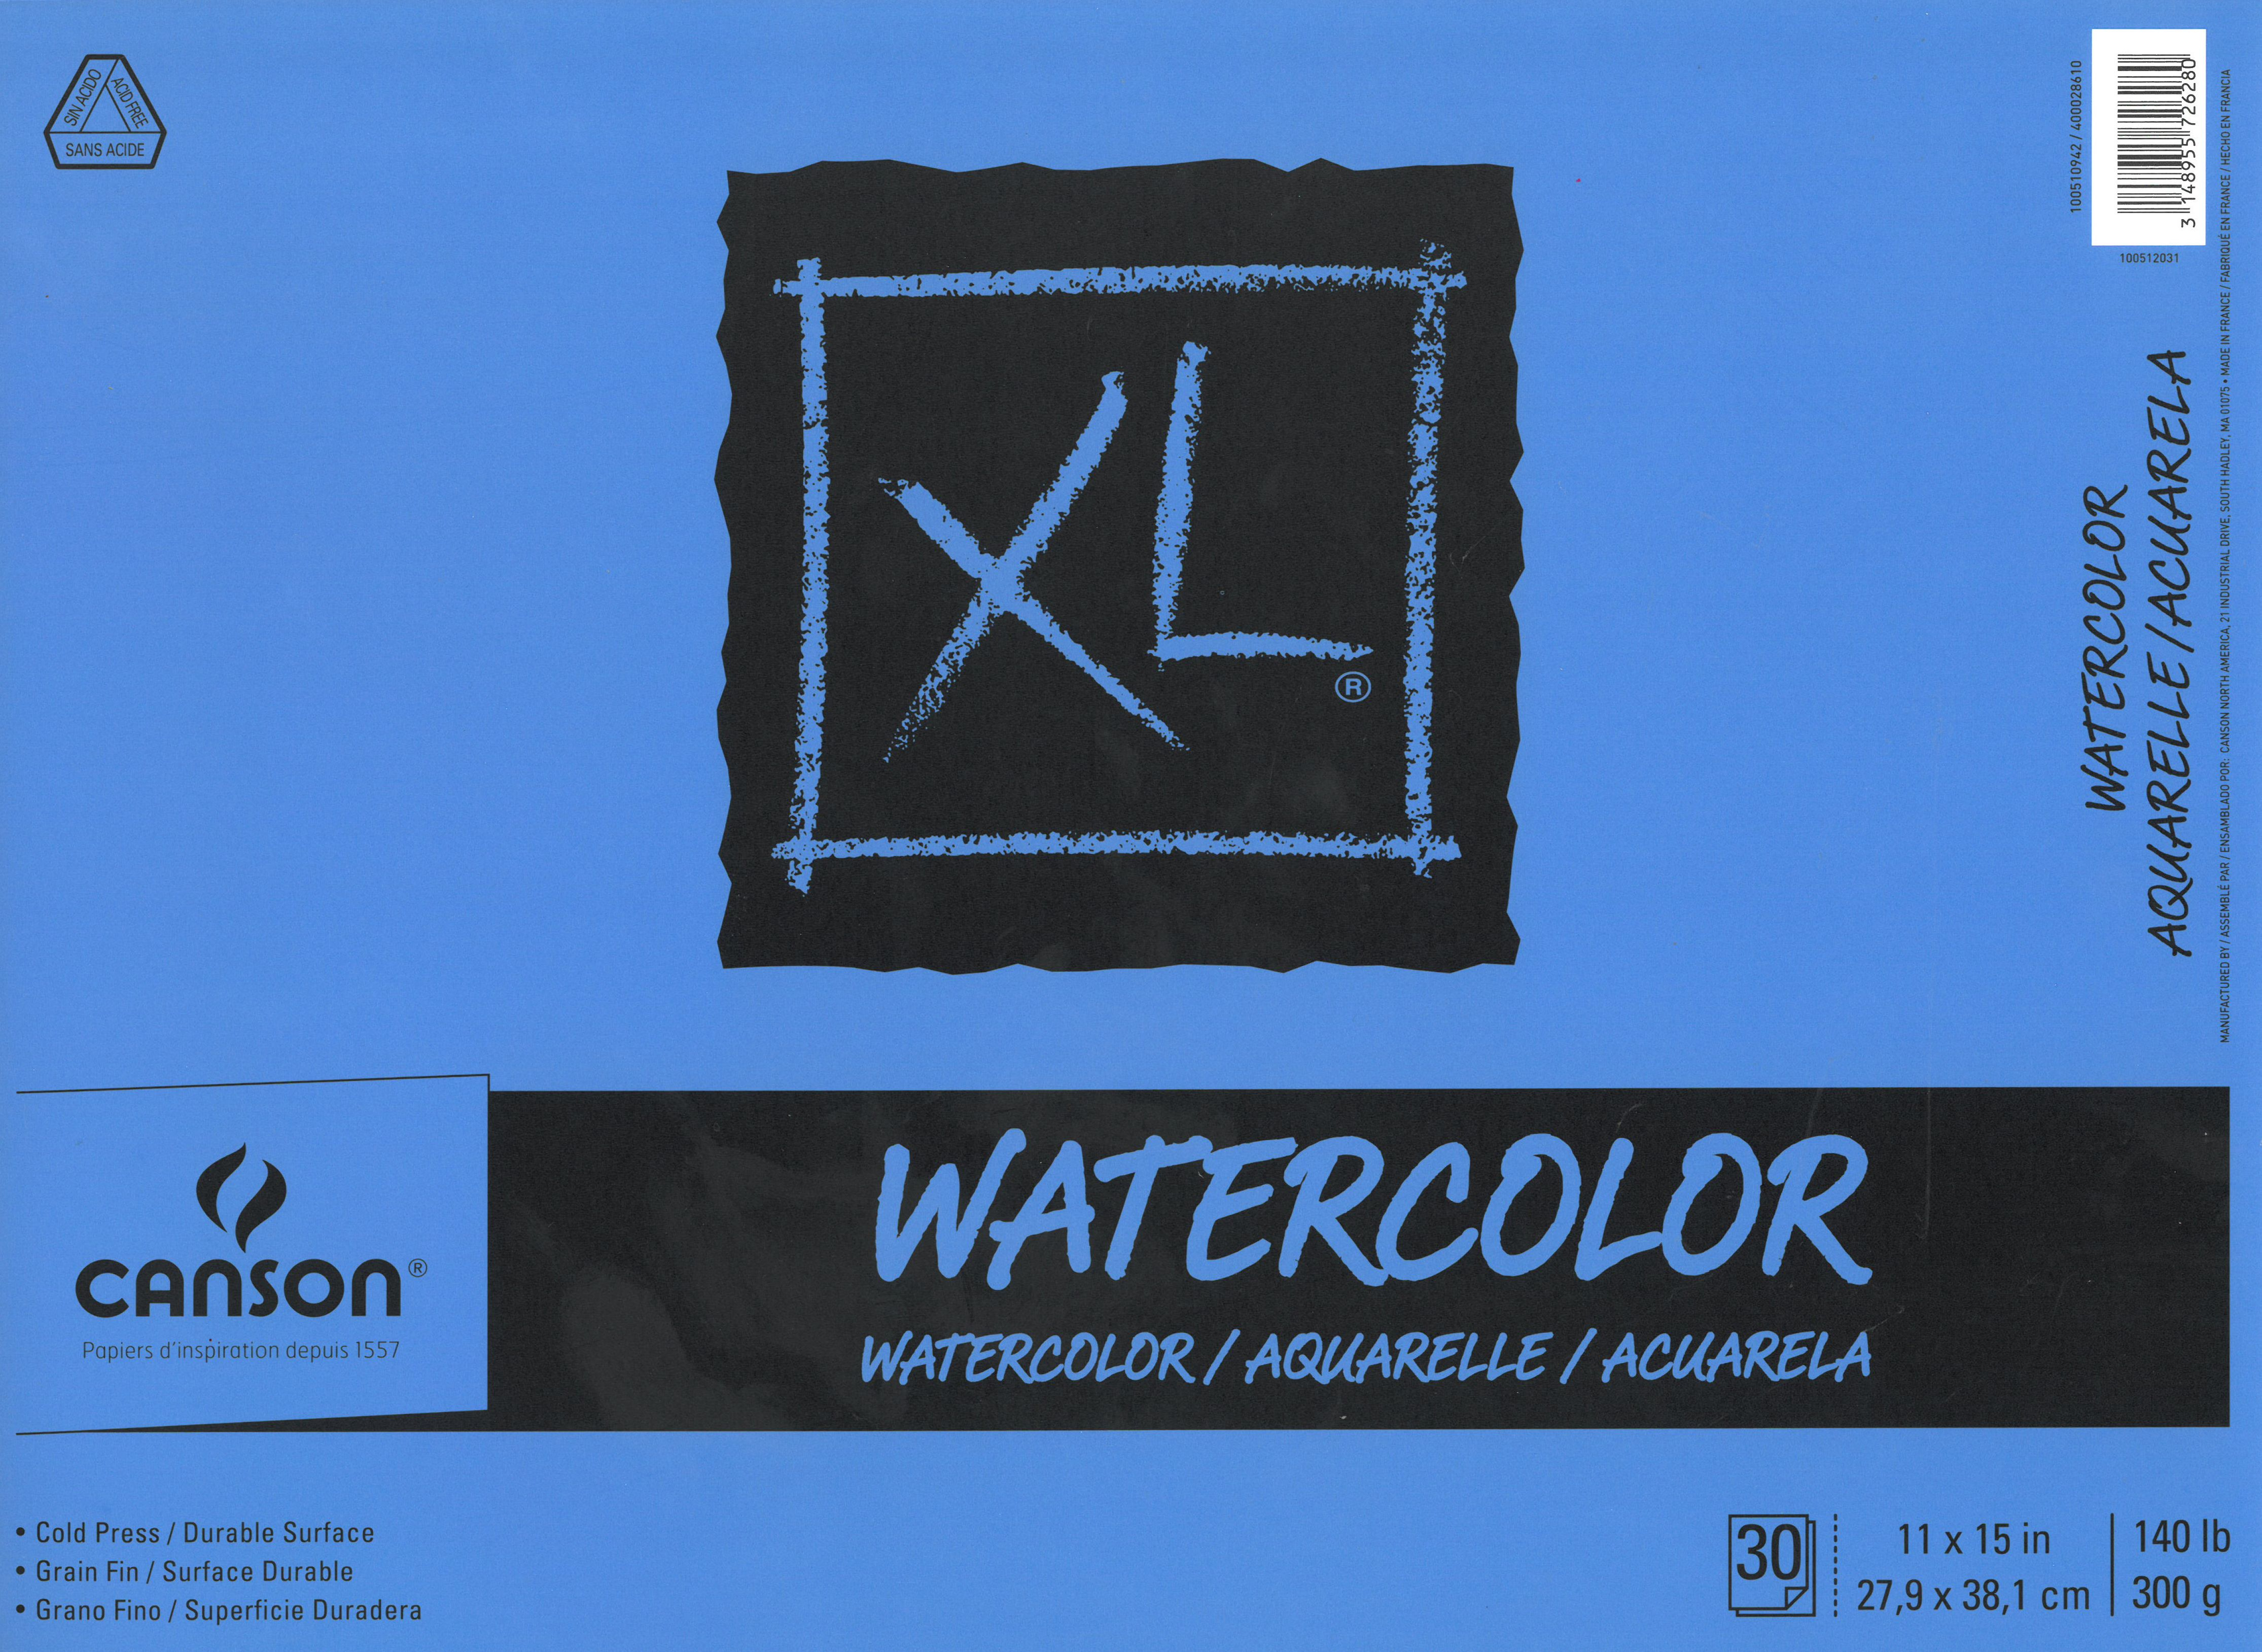 Canson Xl Watercolor Pad 11 X 15 30 Sheets With Images